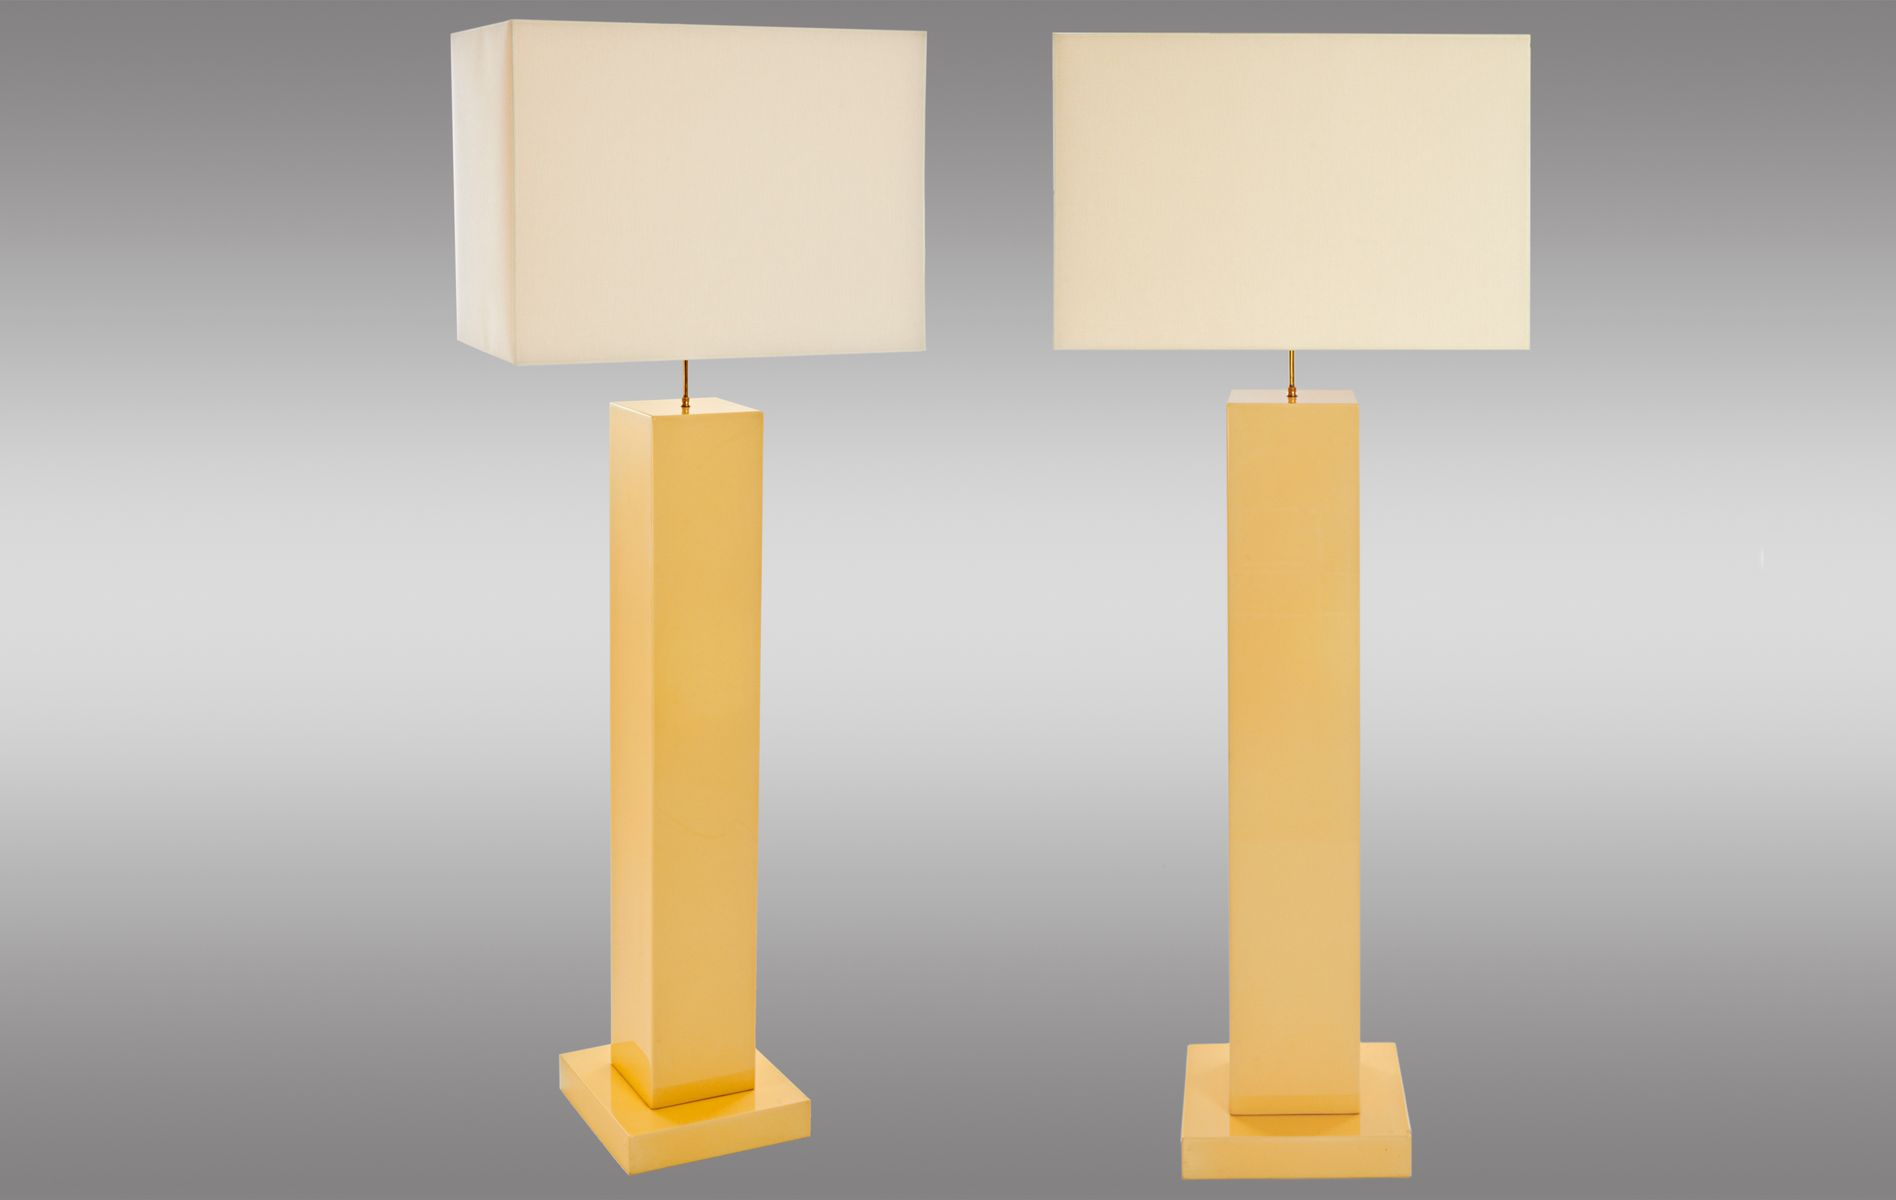 Lacquered wood floor lamps 1970s set of 2 for sale at pamono for 1970s floor lamps